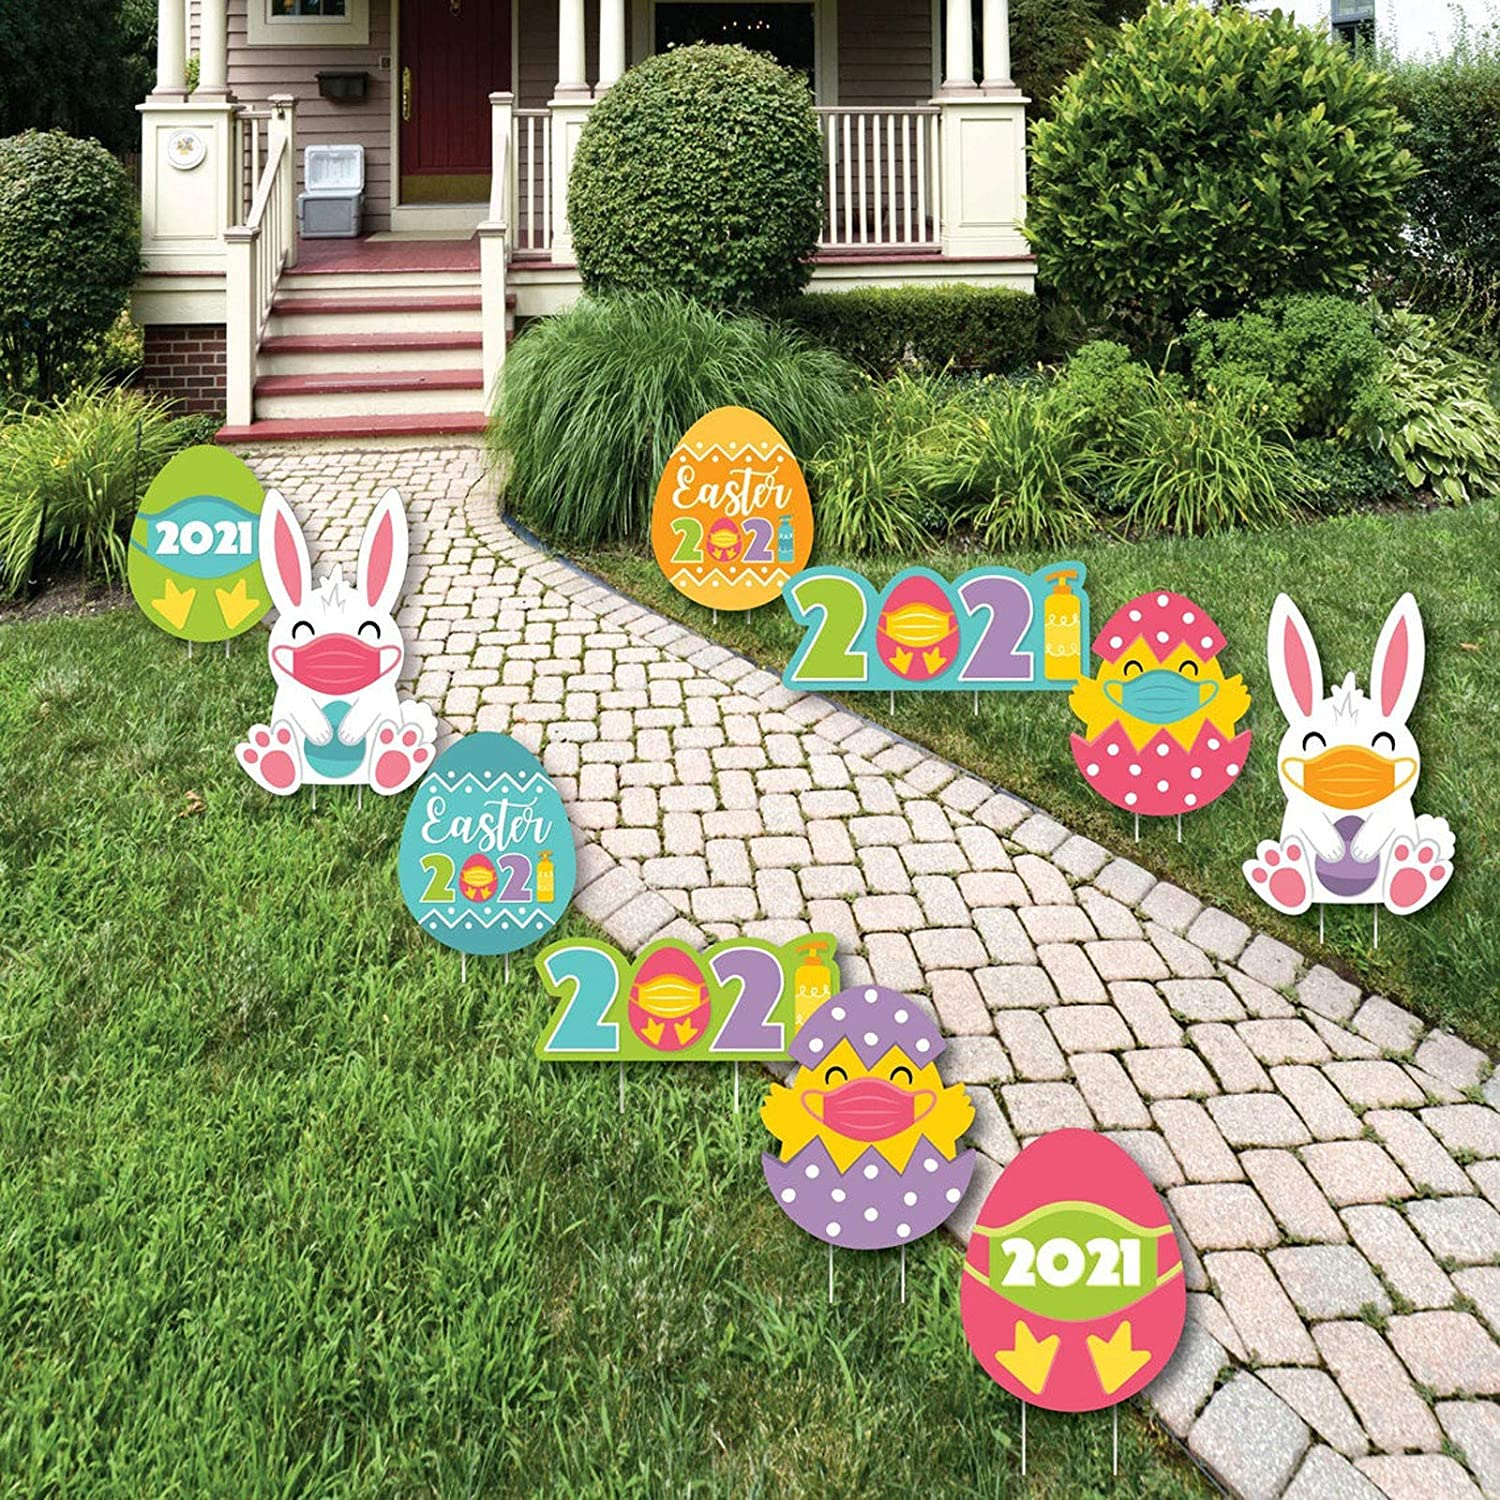 10PCS Easter Yard Finally popular brand Signs Decorations Outdoor Eggs Miami Mall Sta Bunny